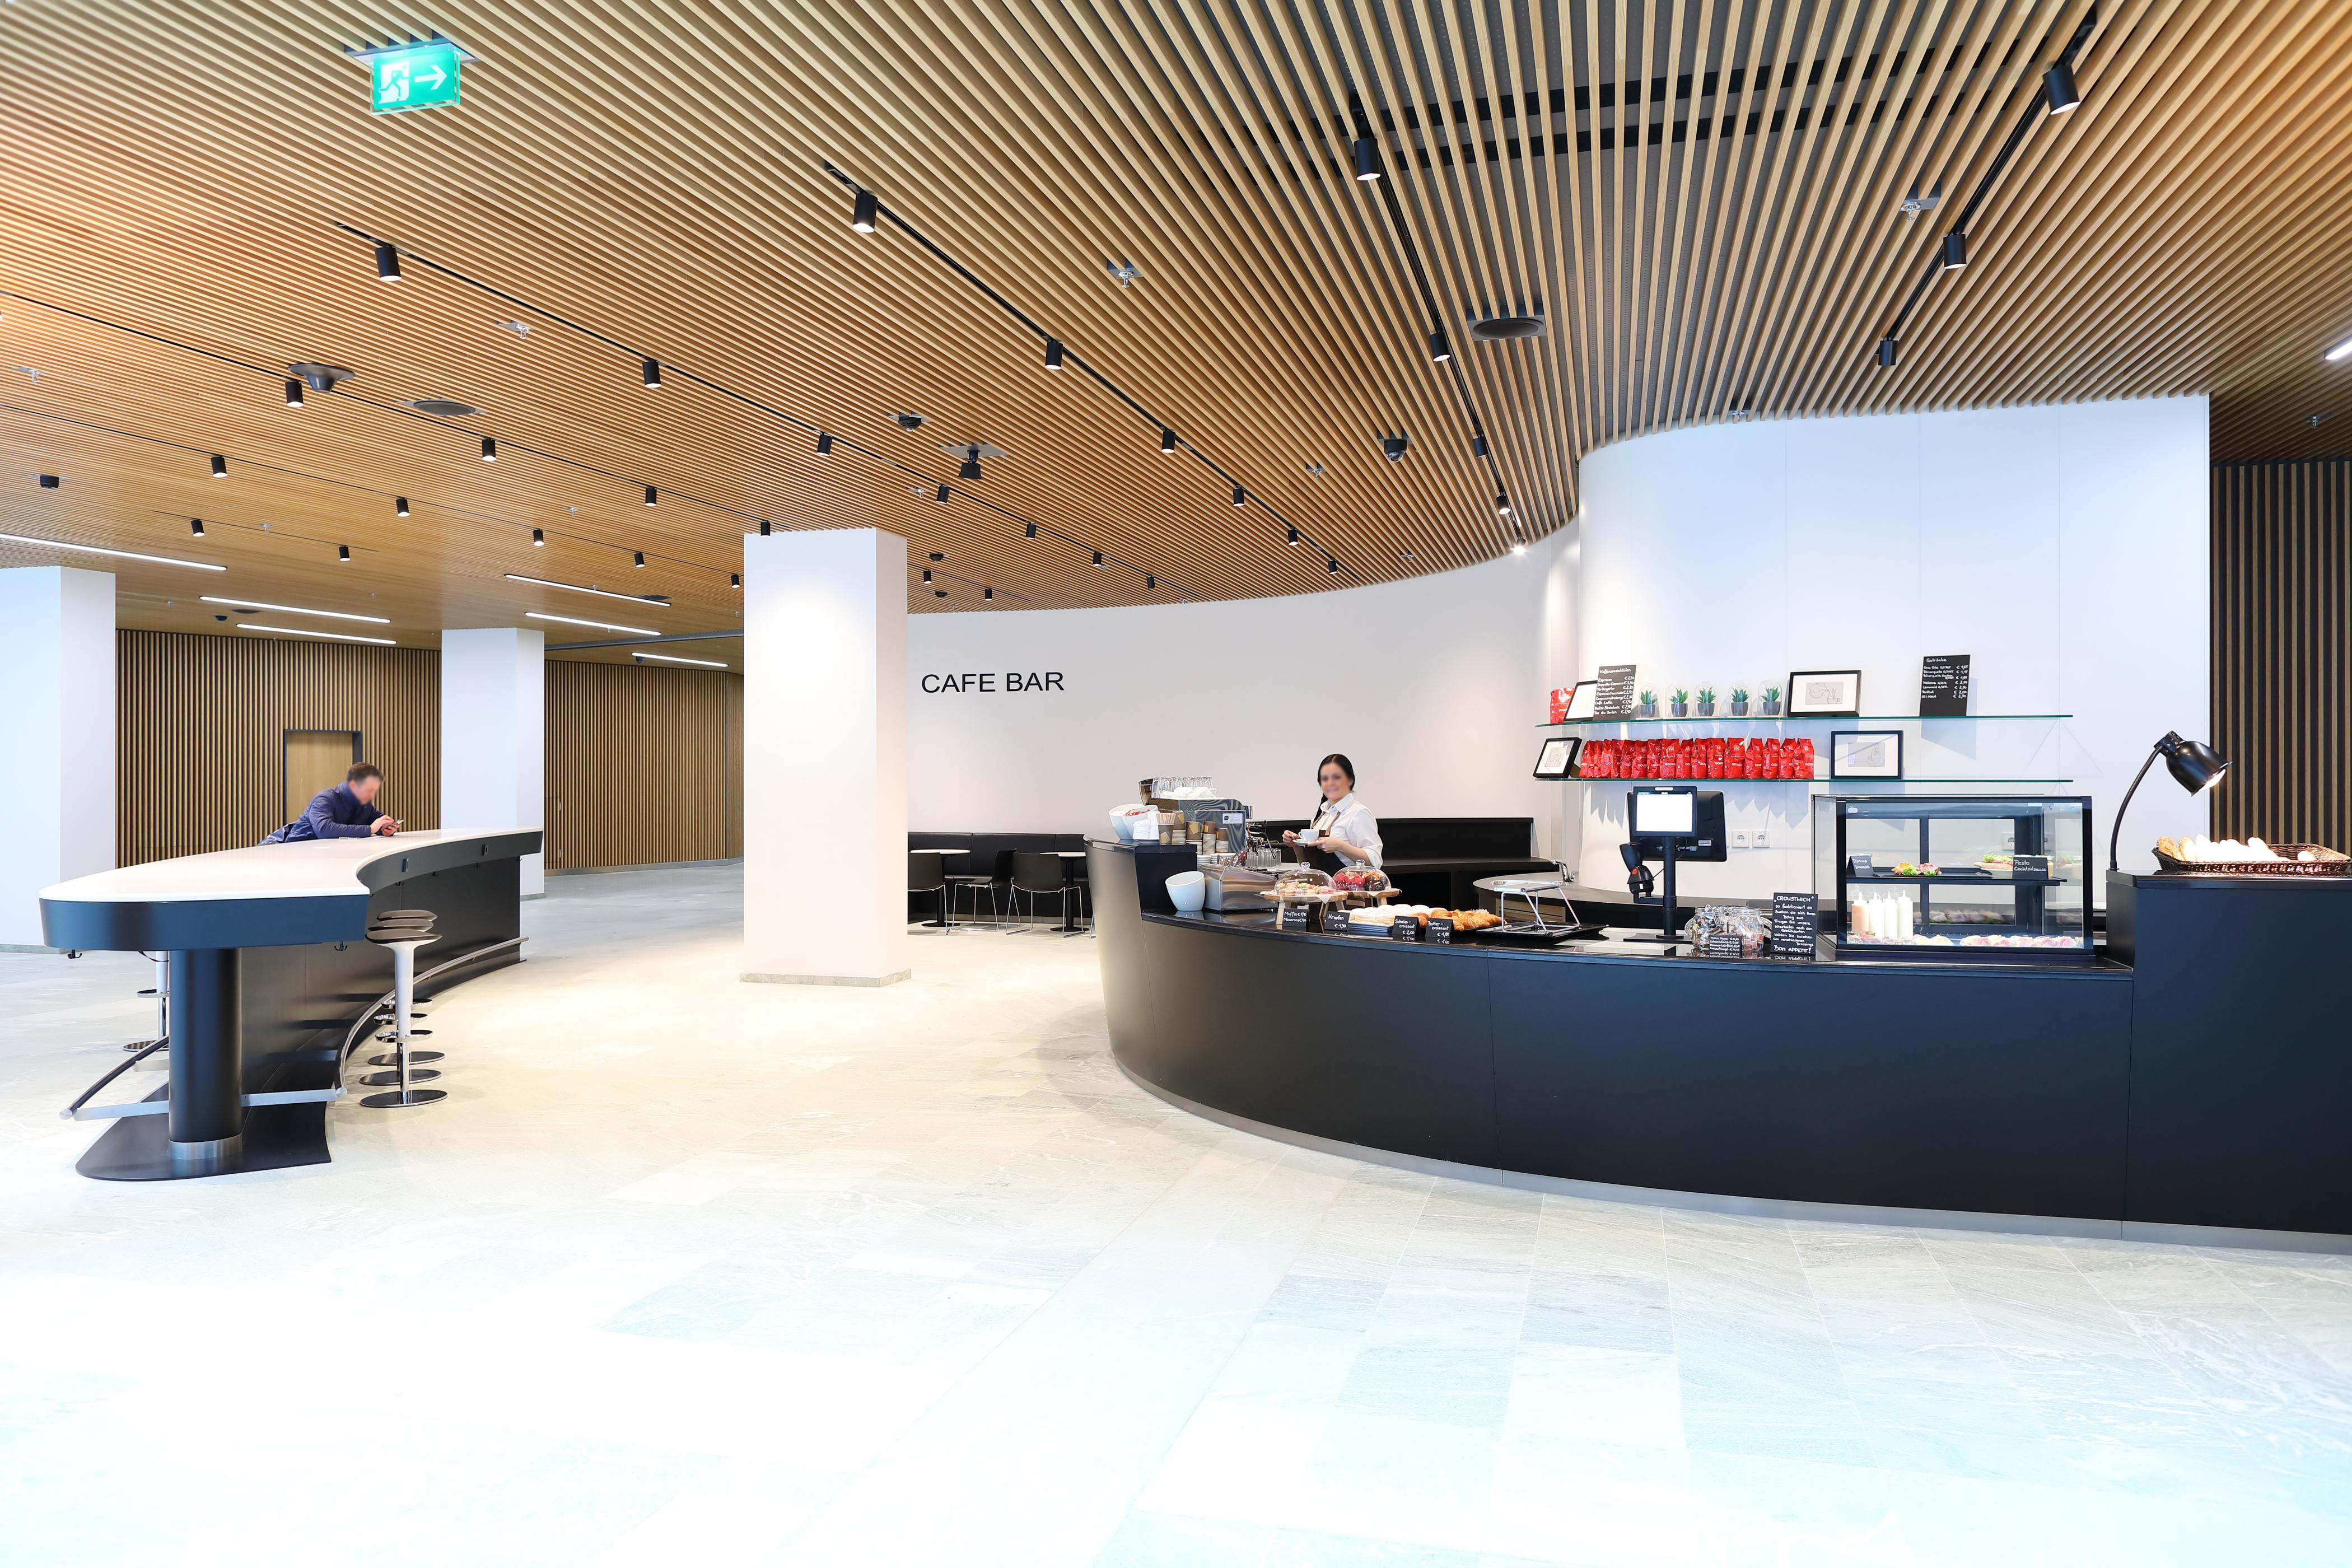 Photo: EURO PLAZA; Restaurant Plaza Eurest; coffee bar, very modern and generously designed, featuring a high curved table; an employee is preparing coffee; a guest with a mobile phone at the table.